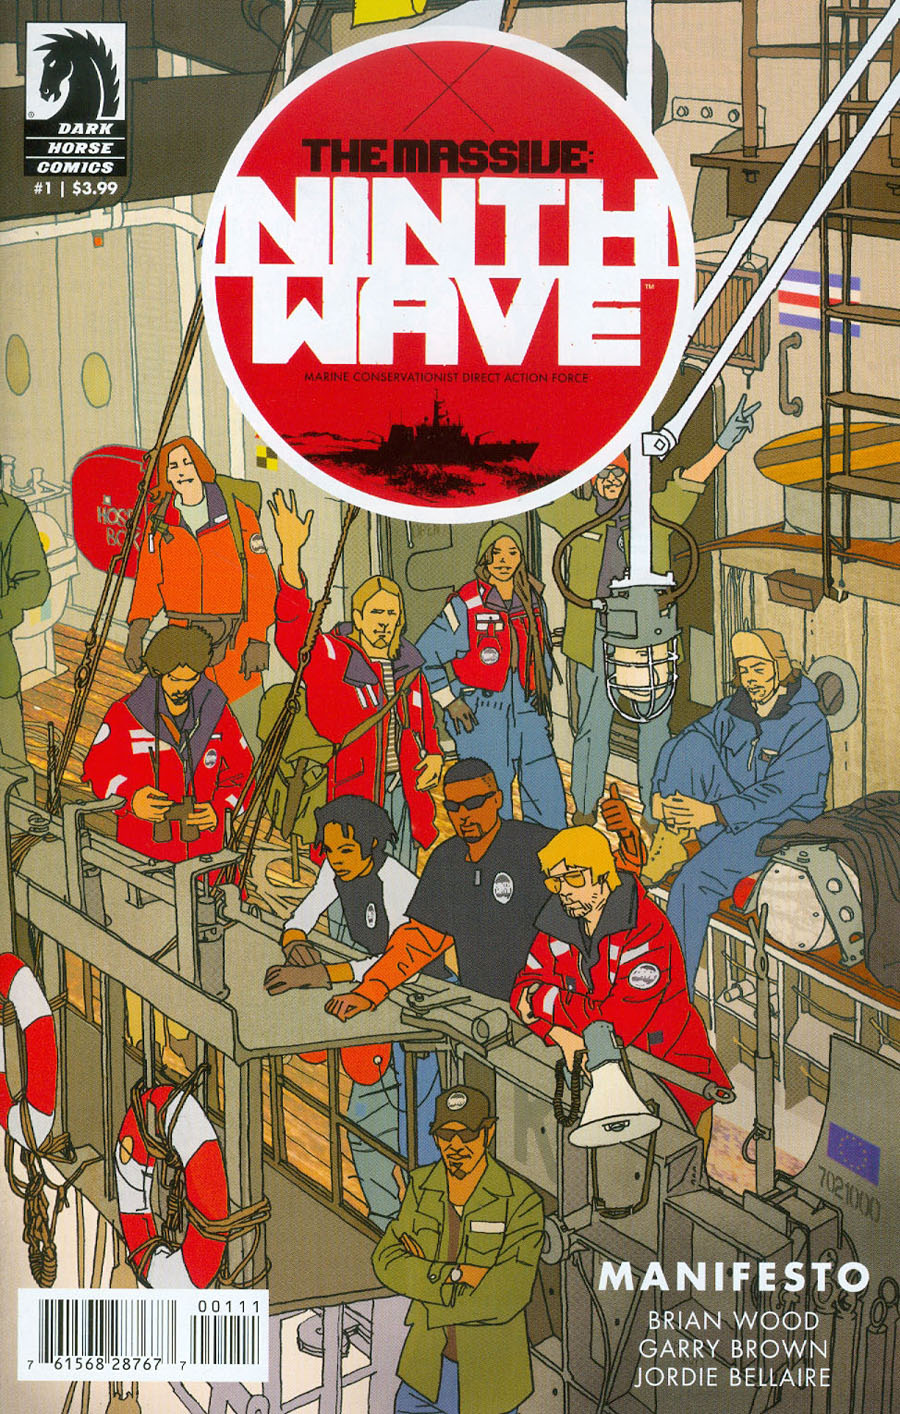 Massive Ninth Wave #1